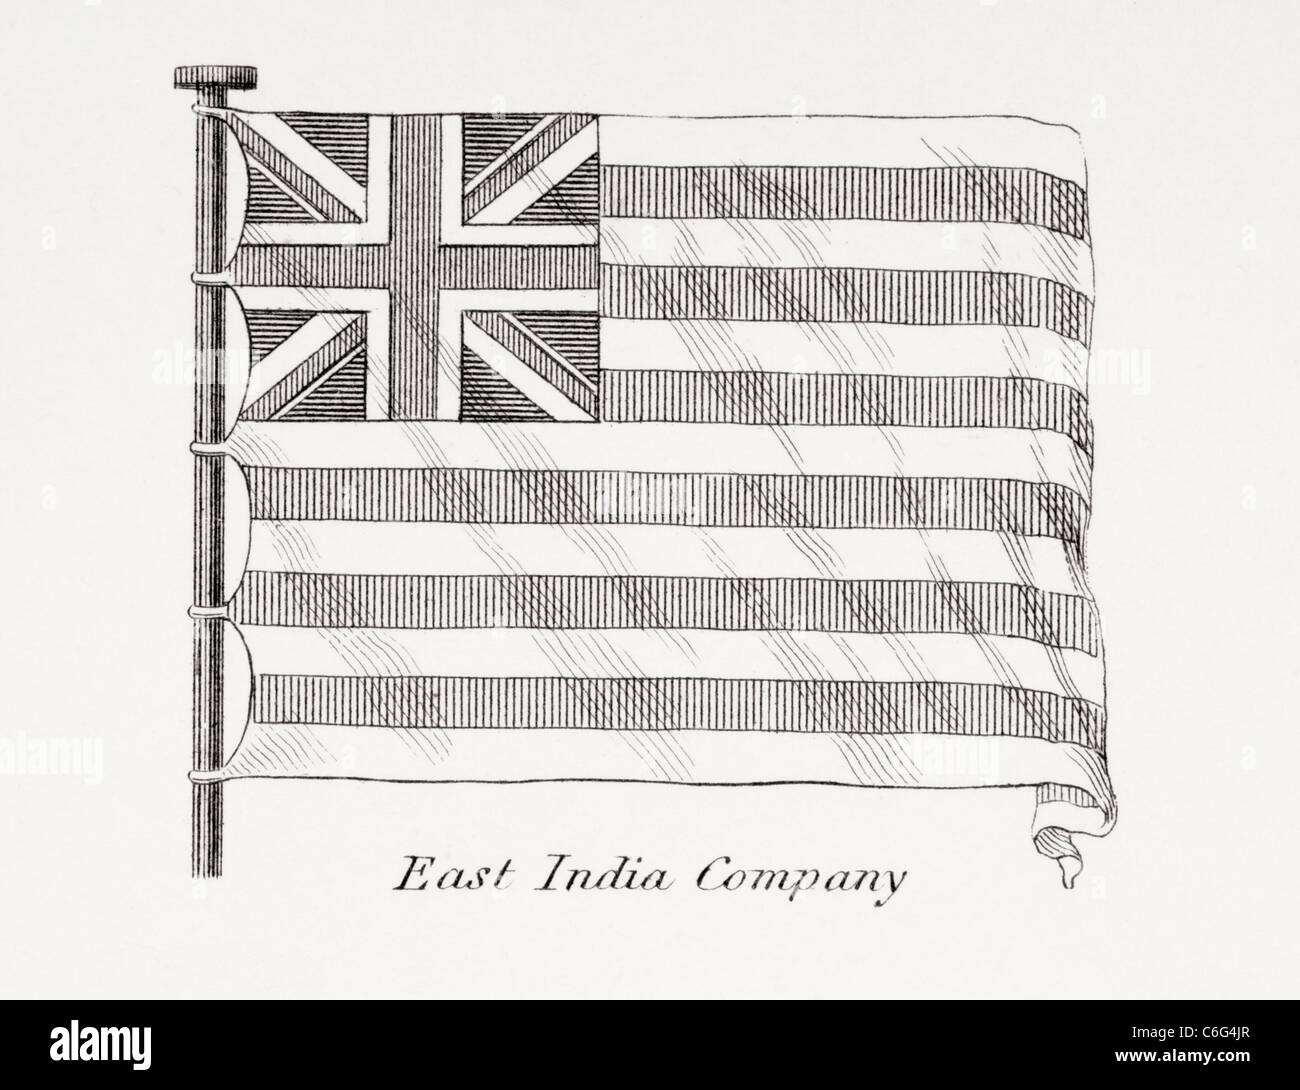 The East India Company flag. Early 19th century. - Stock Image